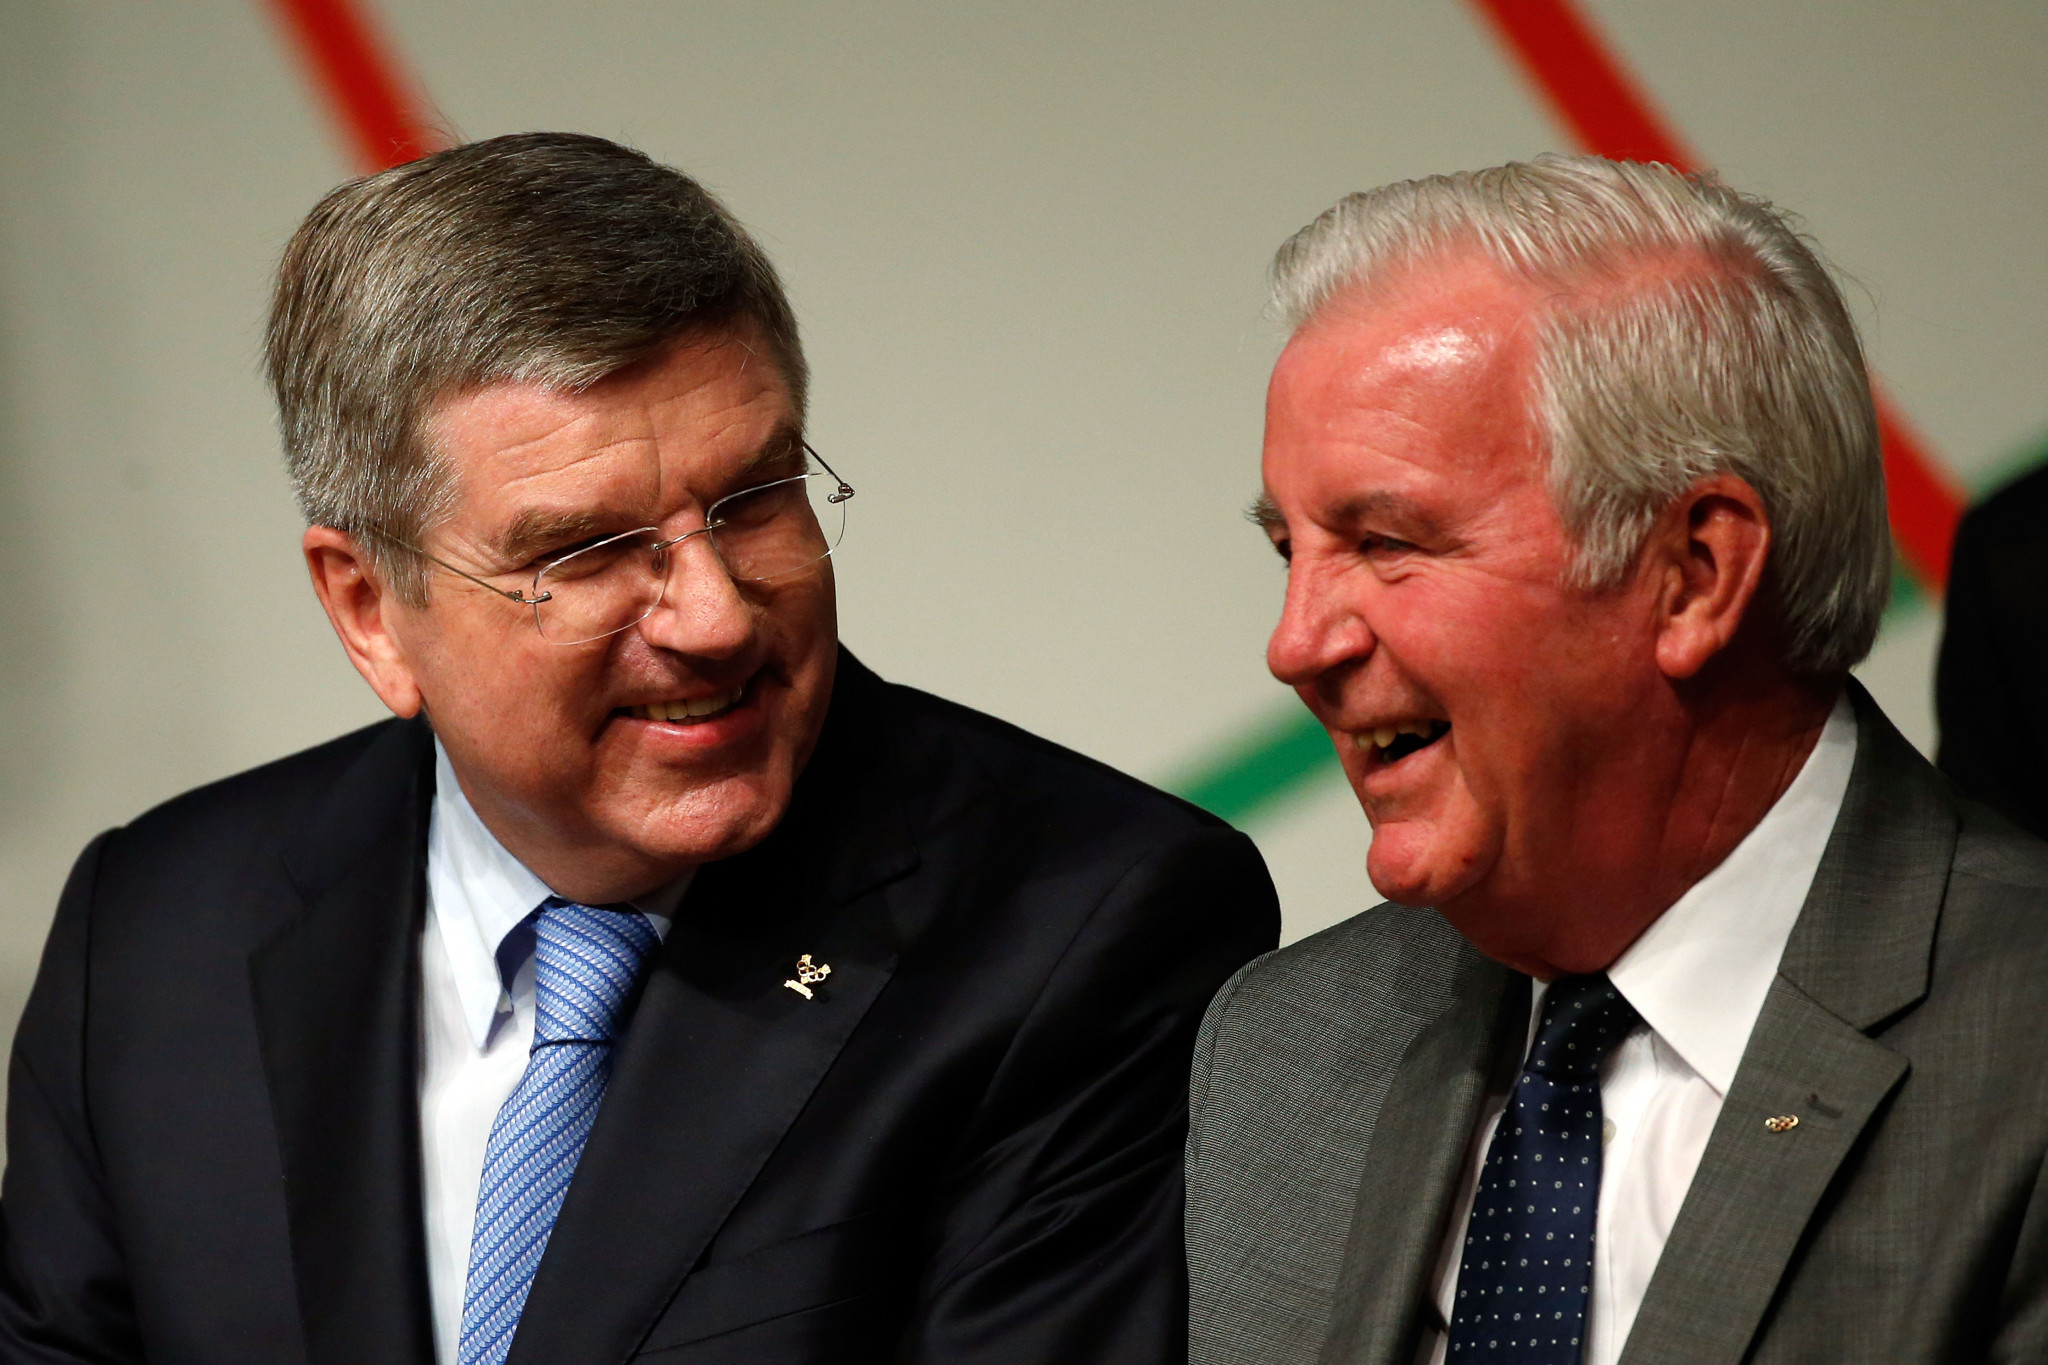 Sir Craig Reedie was reluctant to criticise the way IOC President Thomas Bach, left, has handled the Russia crisis ©Getty Images